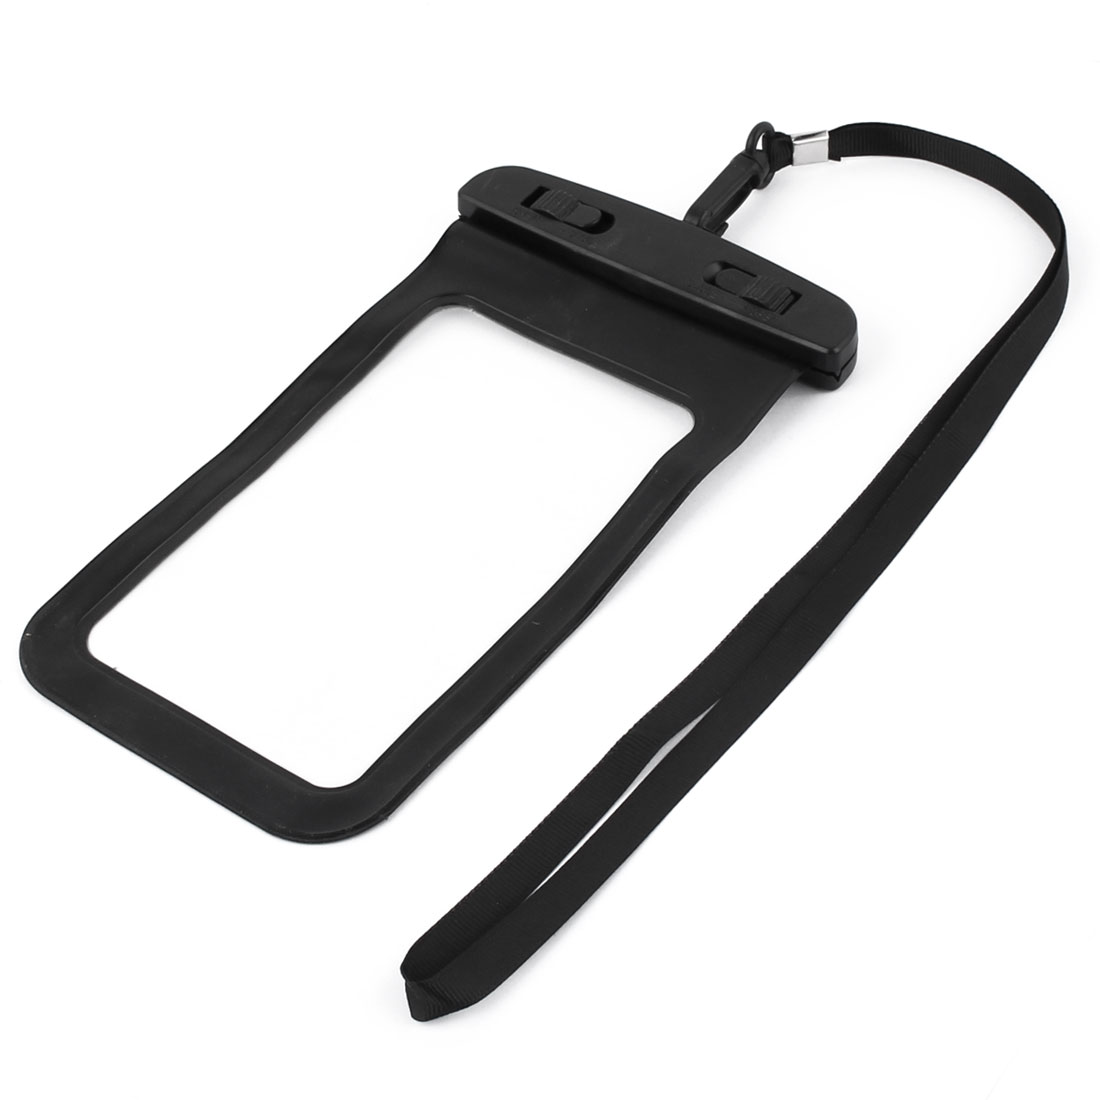 Underwater Cell Phone Water Resistant Case Bag Pouch Holder Container Black